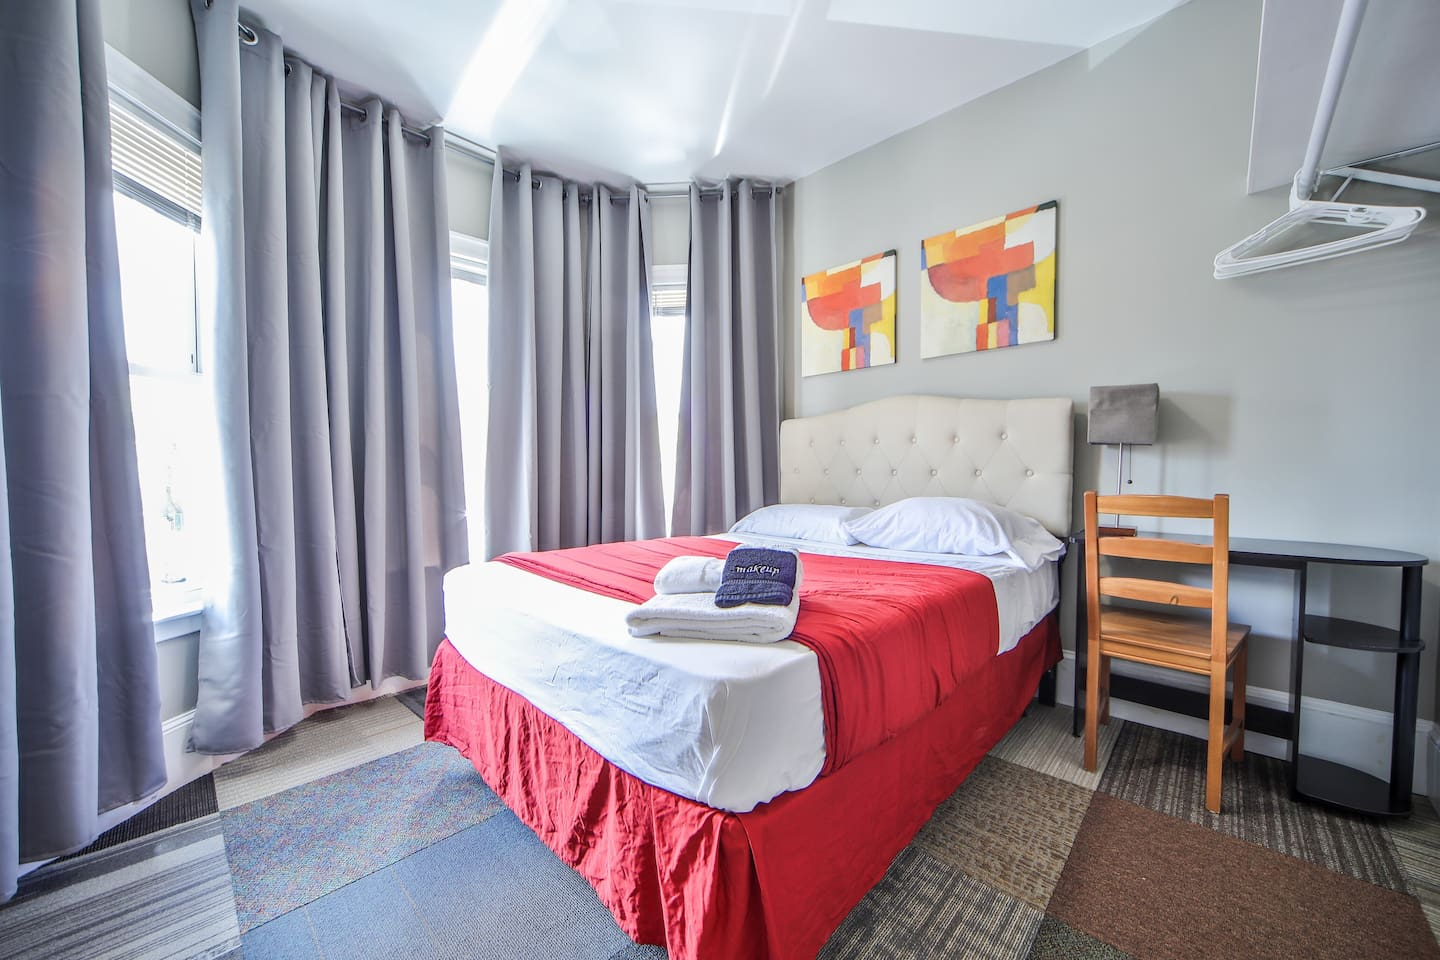 Lovely room with comfortable mattress.